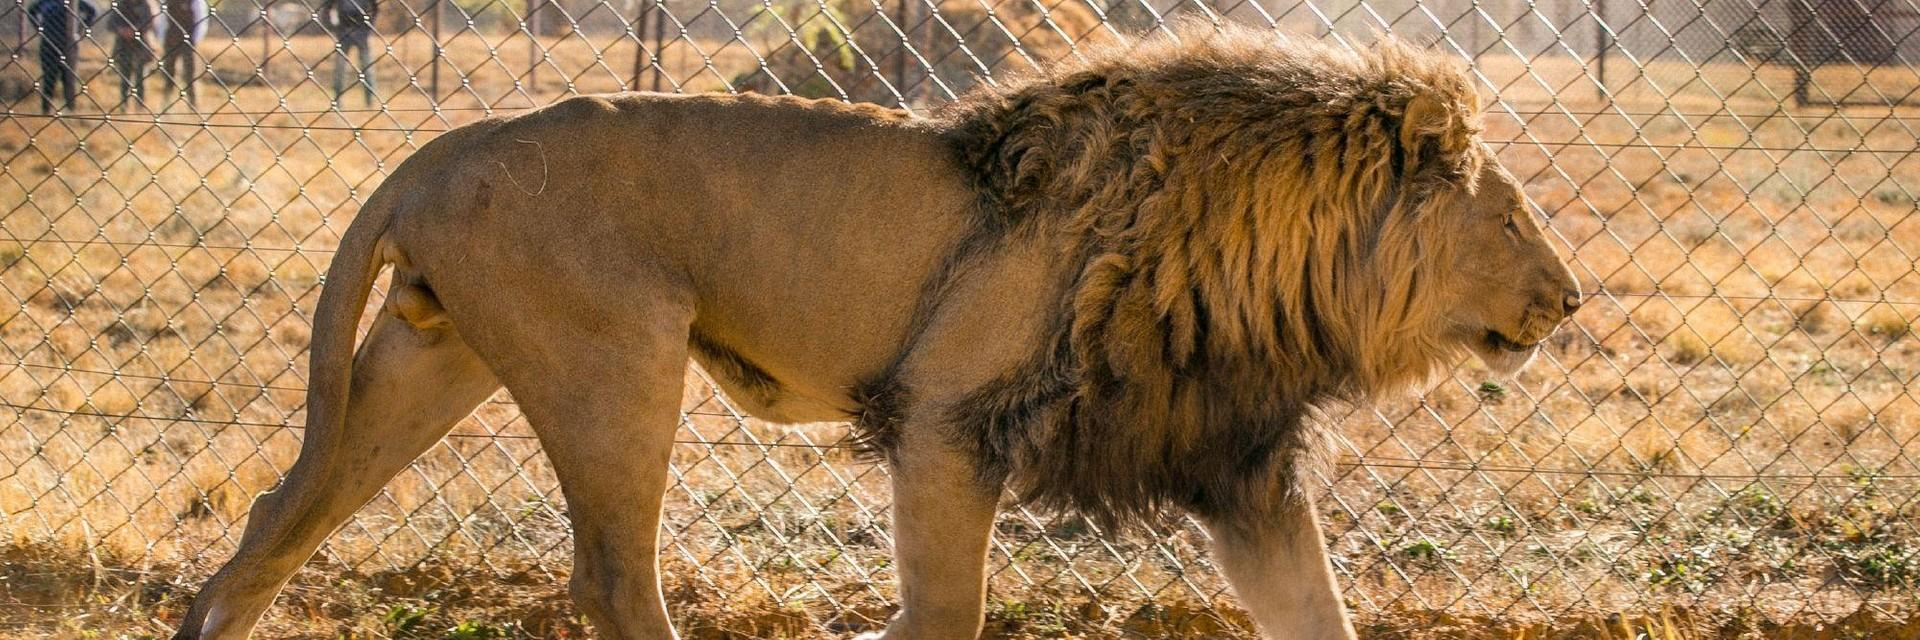 an the captive breeding of lions in South Africa